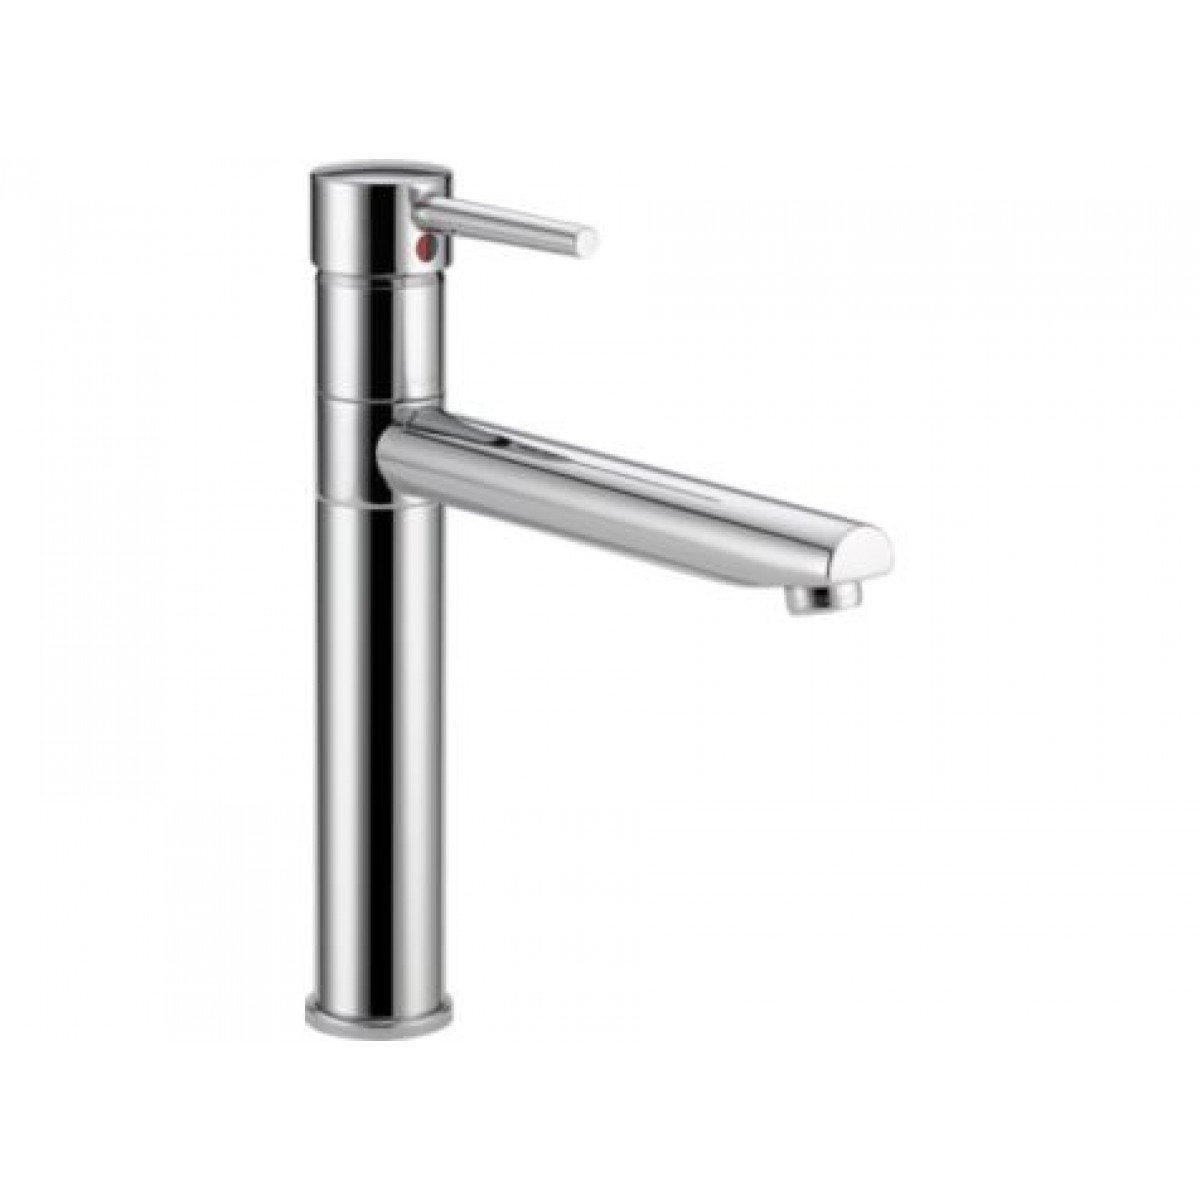 European Style Kitchen Faucet : Delta trinsic centerset lead free single handle european design kitchen faucet